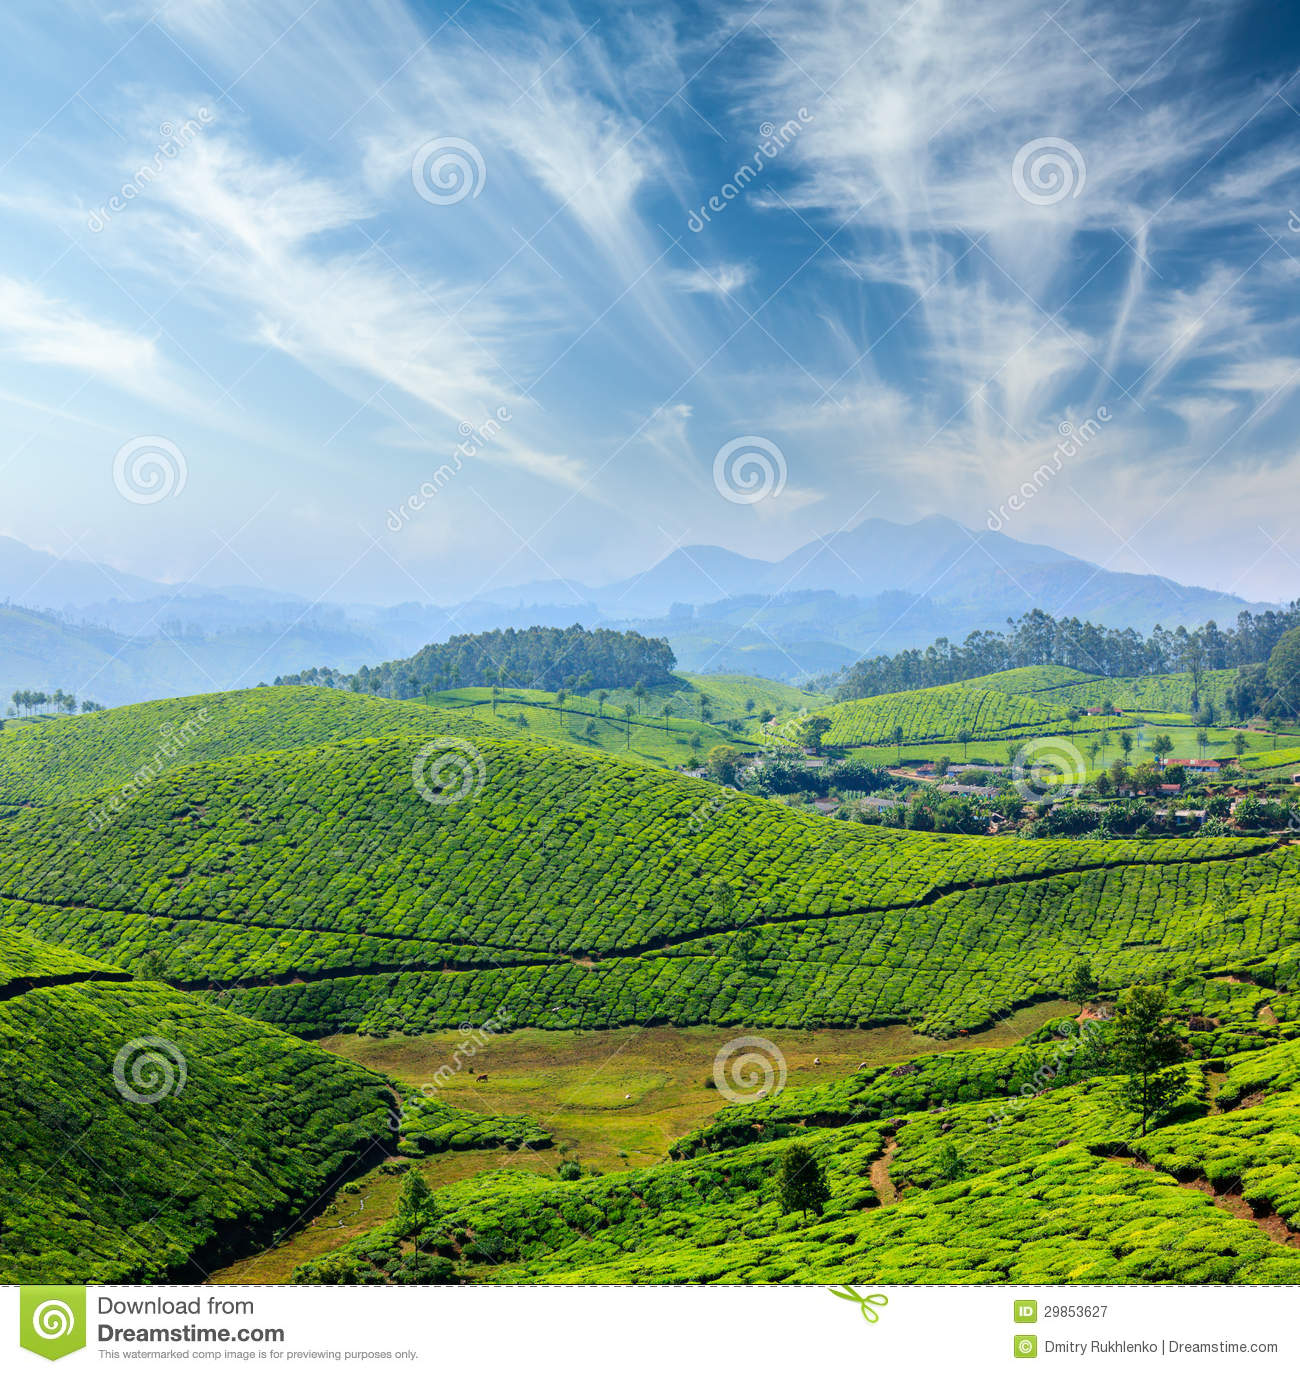 ... Kerala concept background - tea plantations. Munnar, Kerala, India